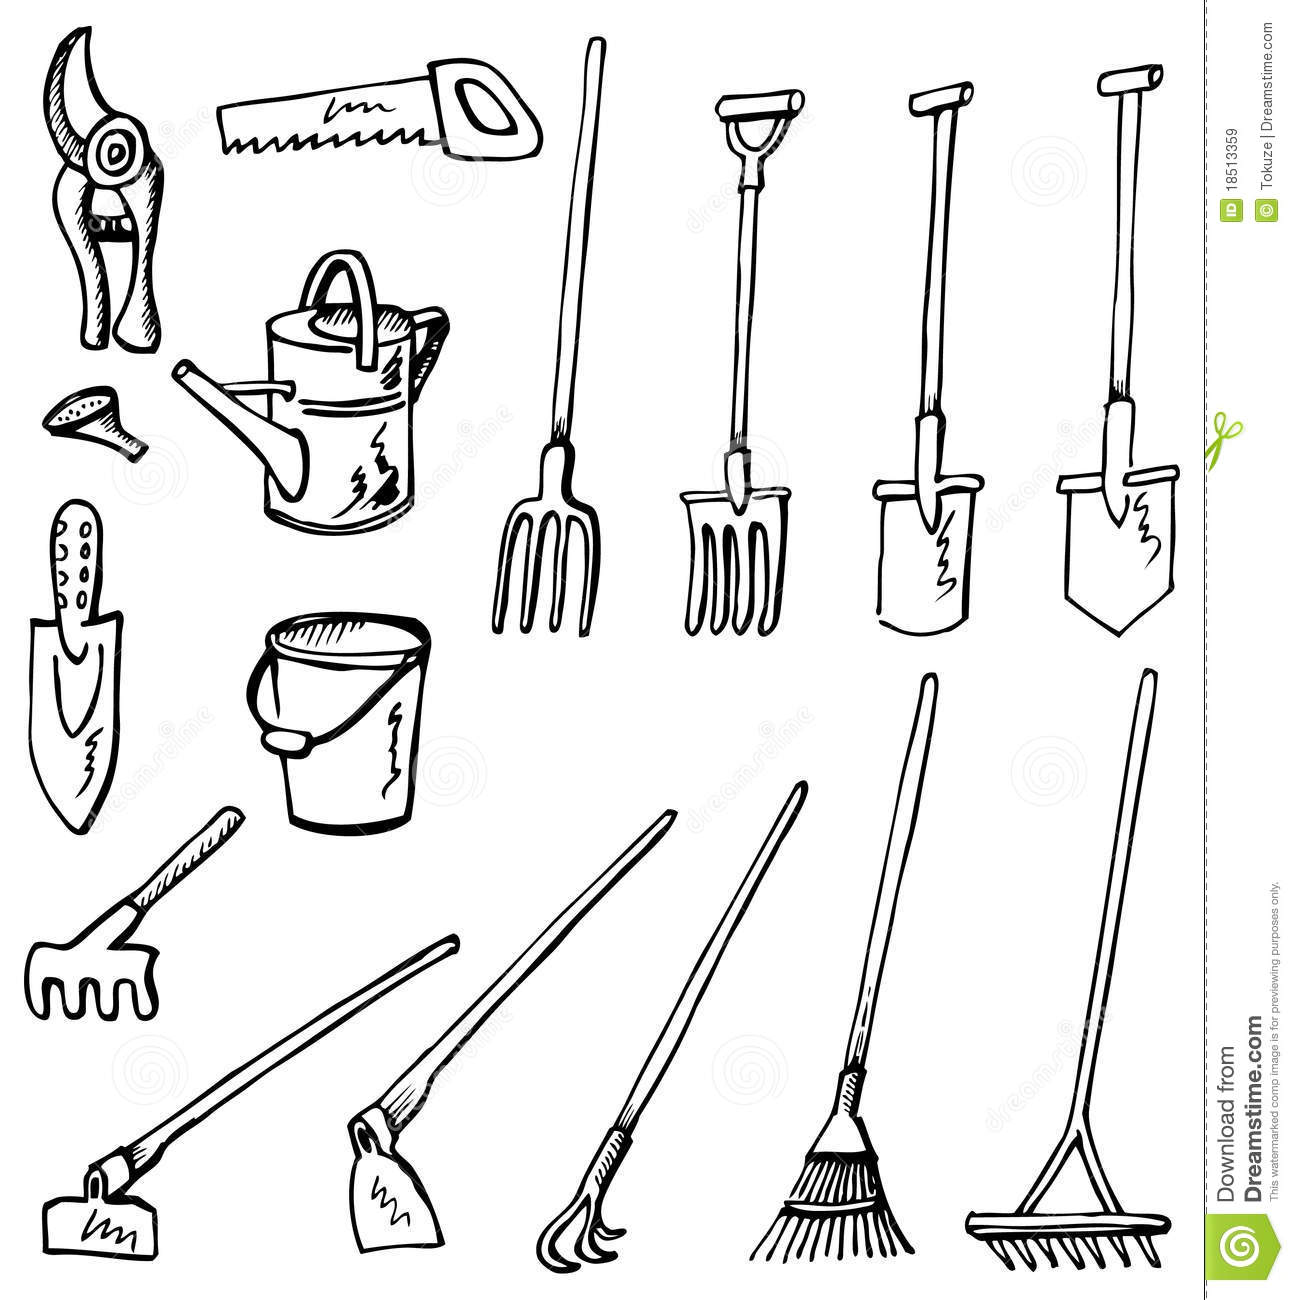 Gardening Tools Doodles Stock Vector Illustration Of